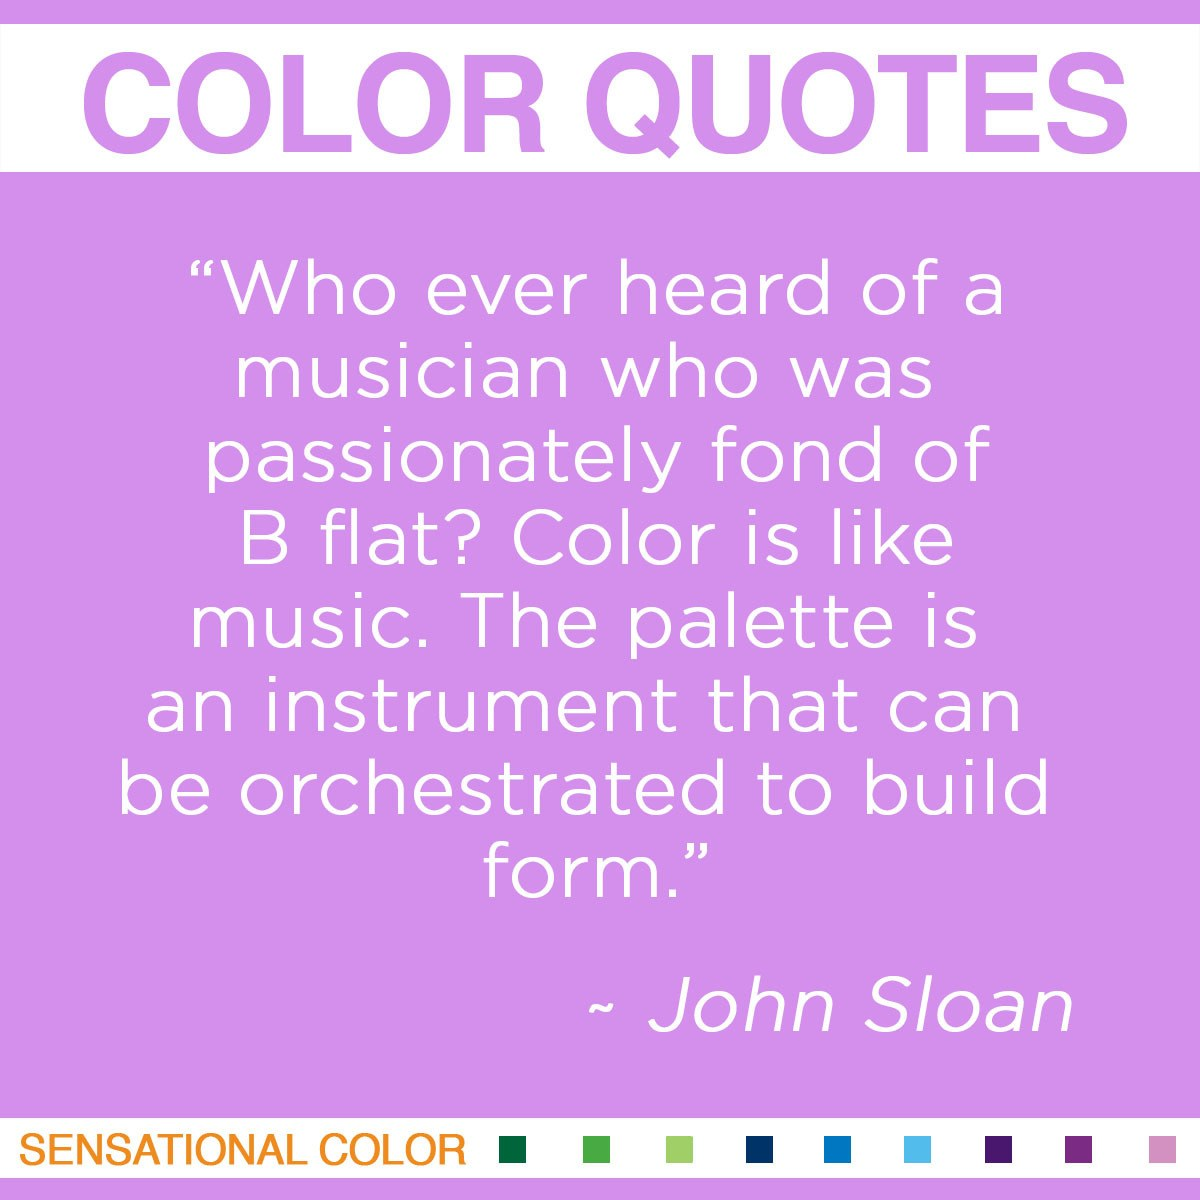 """Who ever heard of a musician who was passionately fond of B flat? Color is like music. The palette is an instrument that can be orchestrated to build form."" - John Sloan"